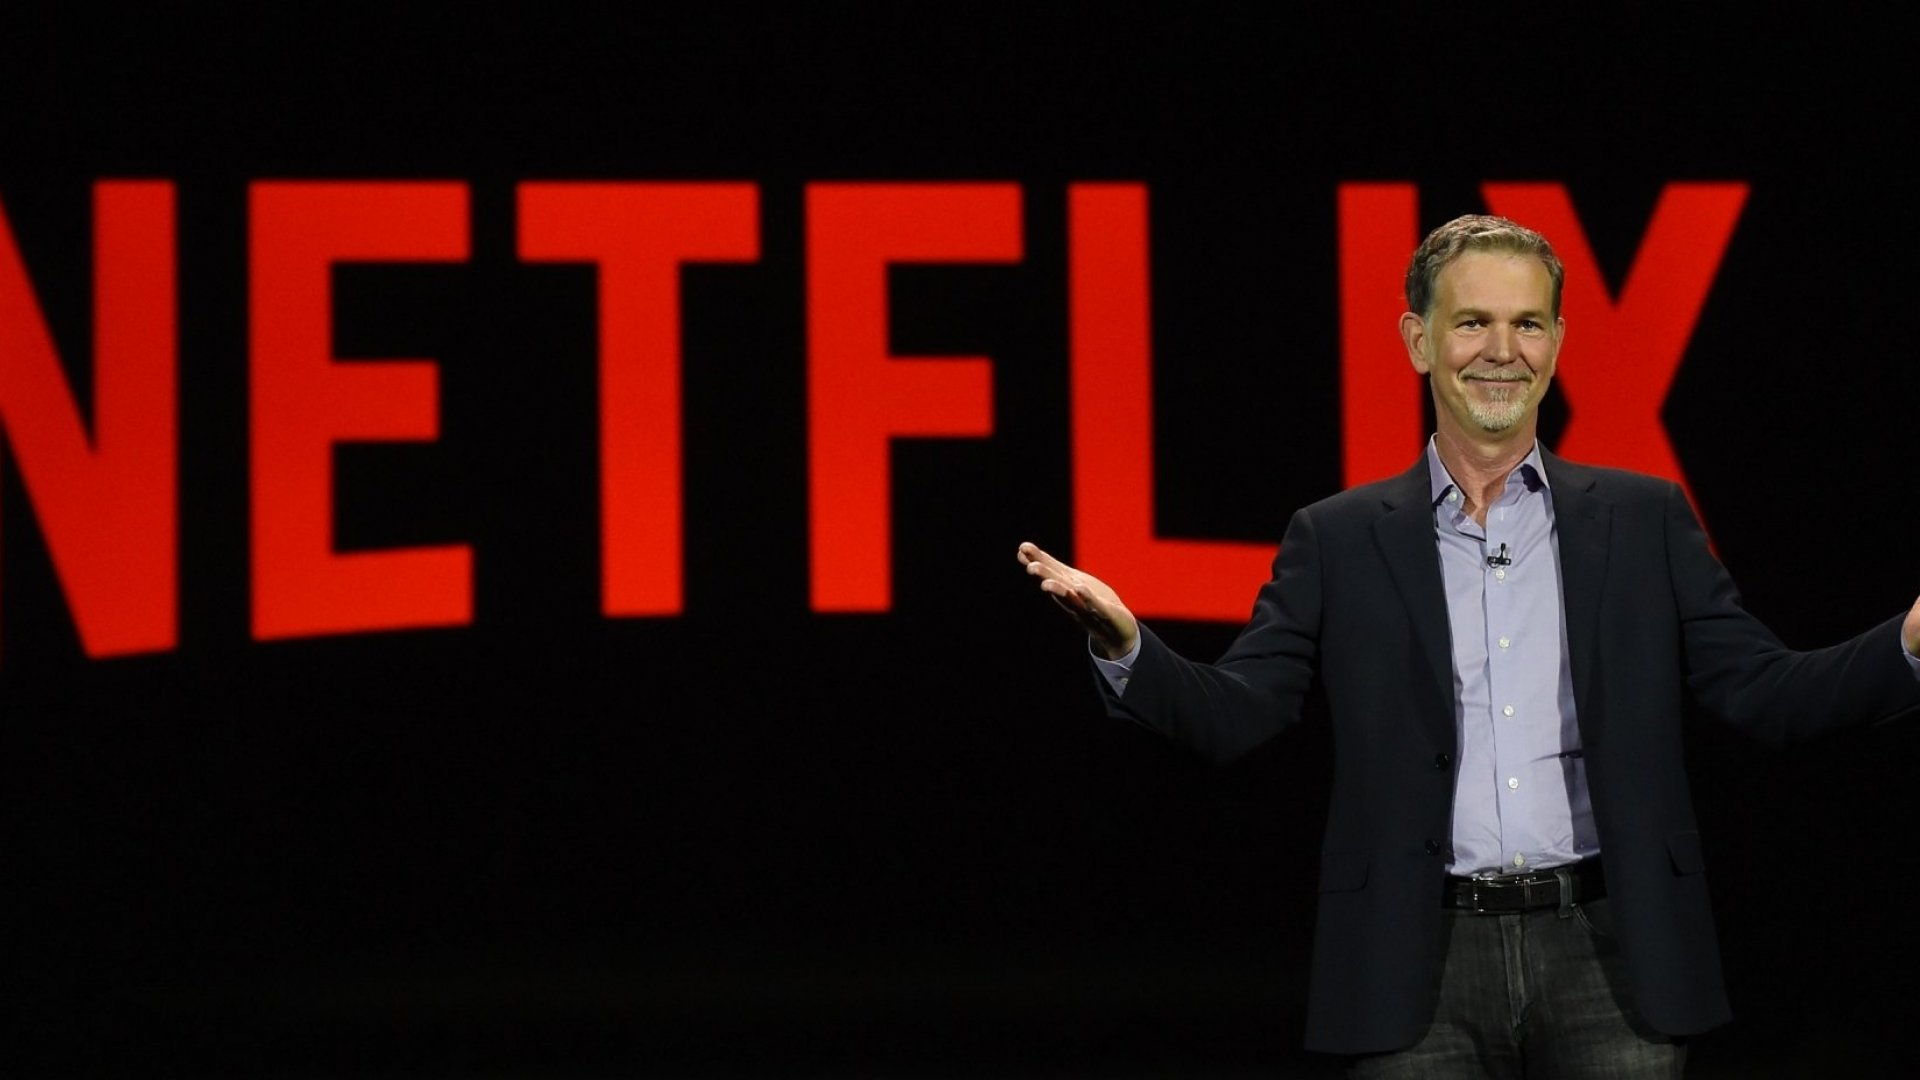 Netflix Just Announced Some Radical Changes. Are They Brilliant or Crazy?